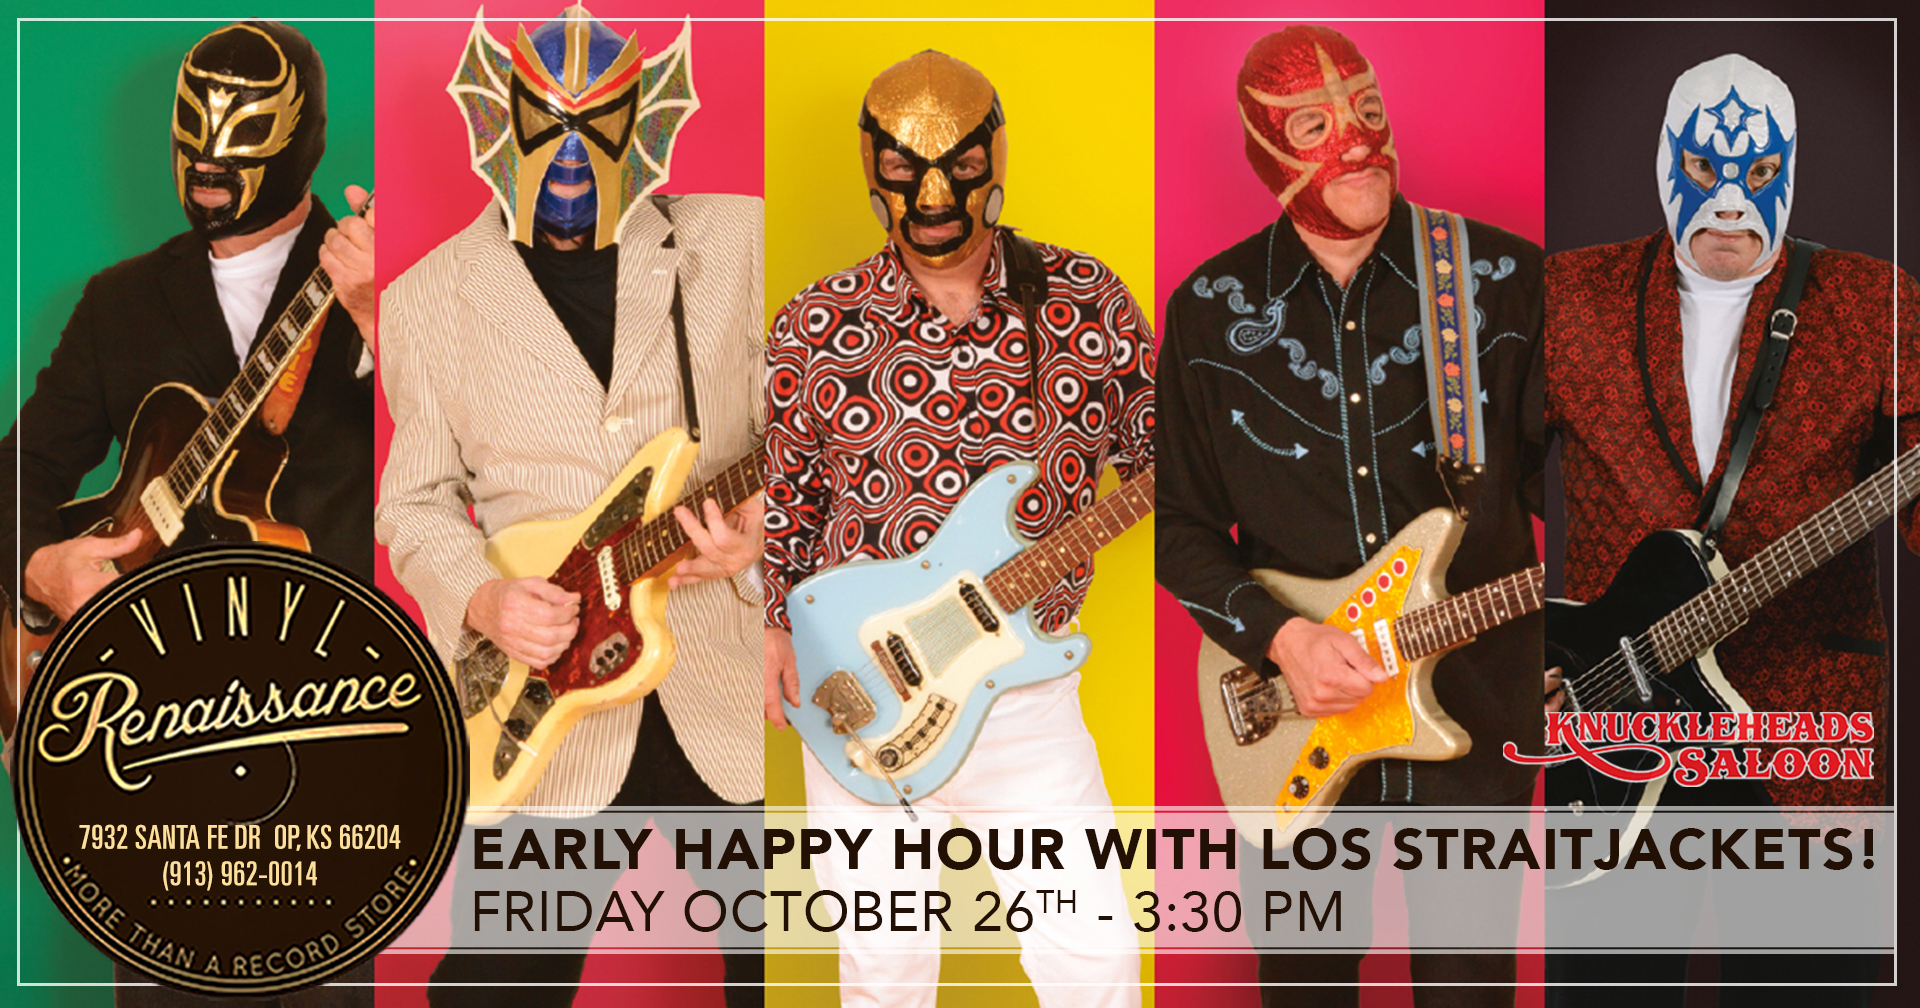 Early Happy Hour with Los Straitjackets!